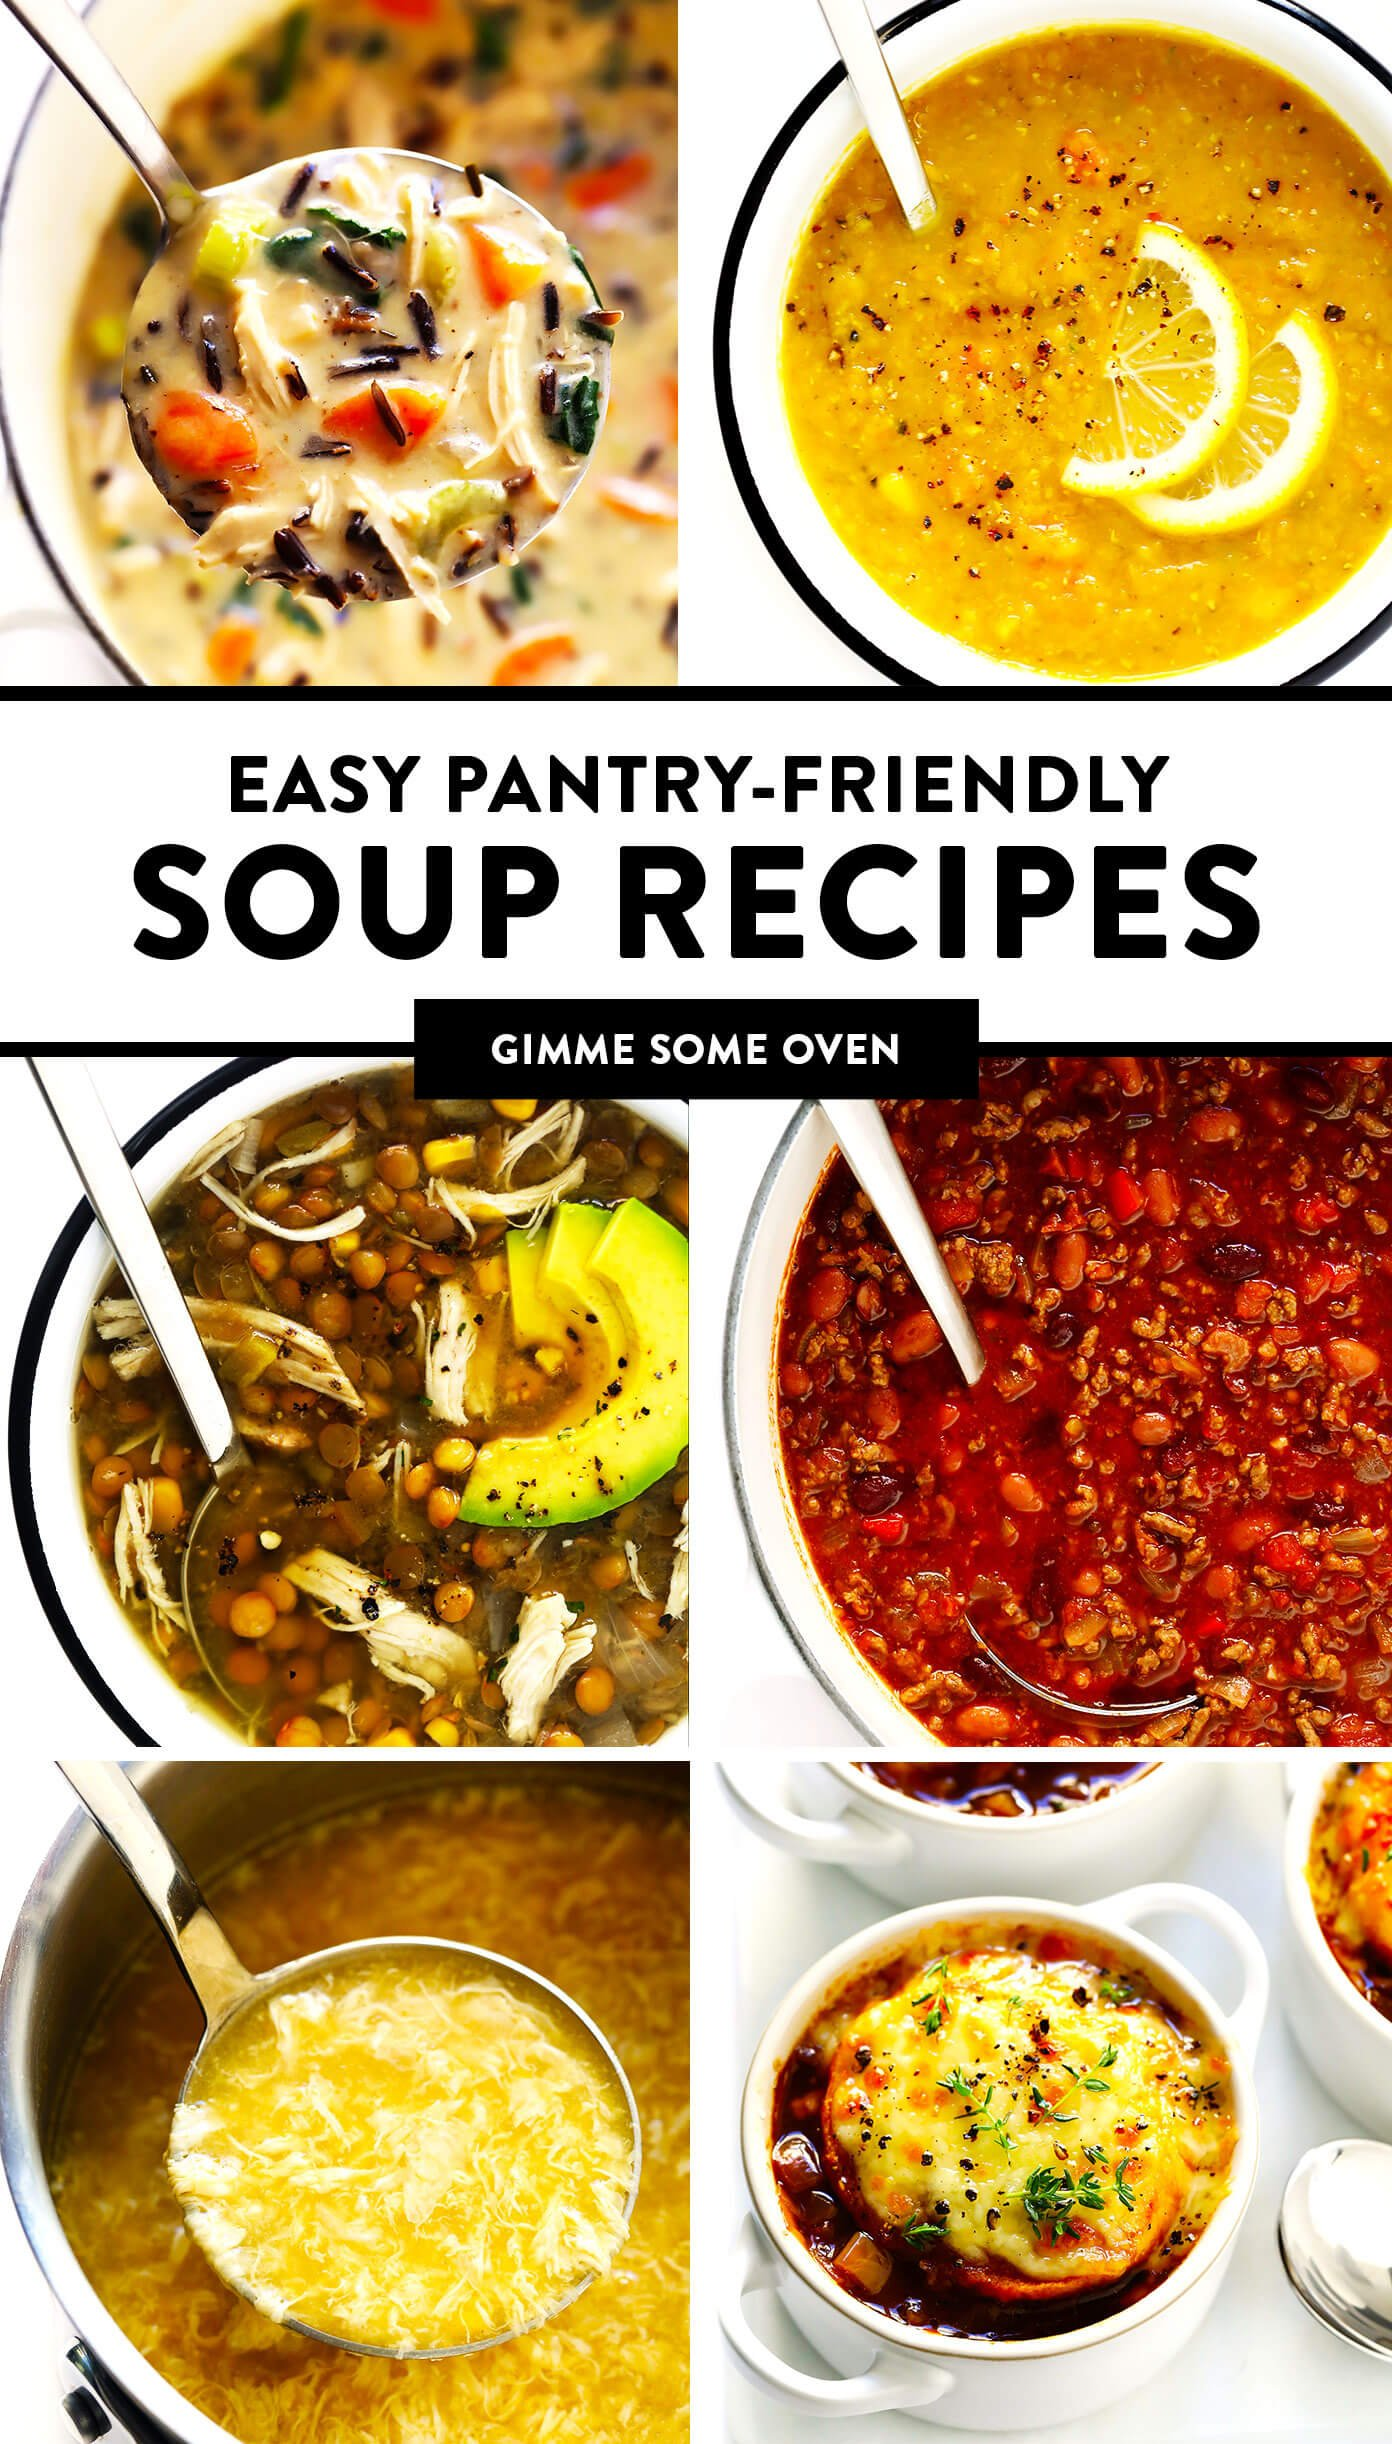 Easy Pantry-Friendly Soup Recipes